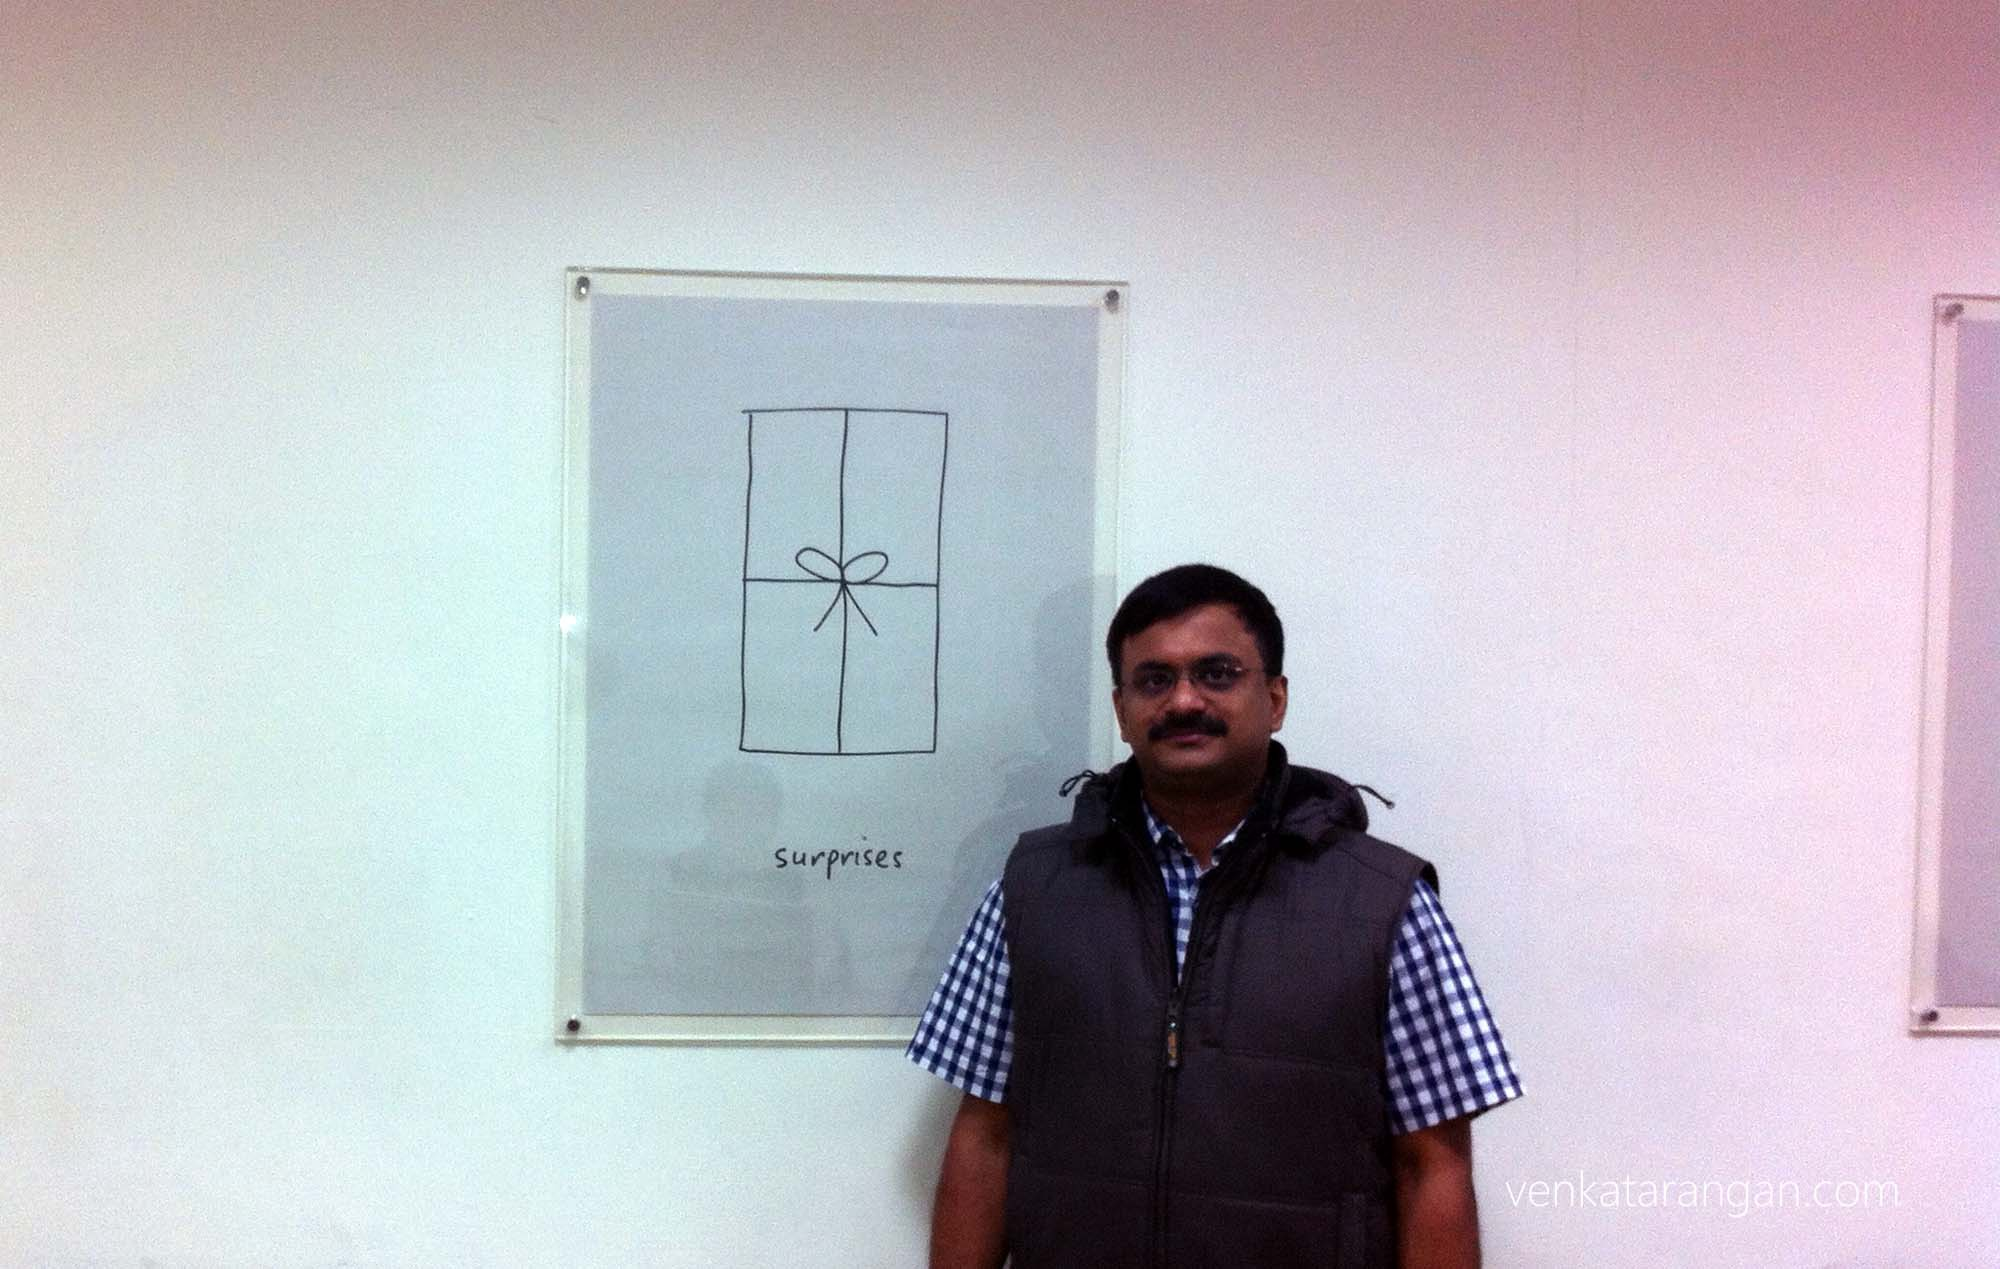 Venkatarangan at HTC, Taiwan